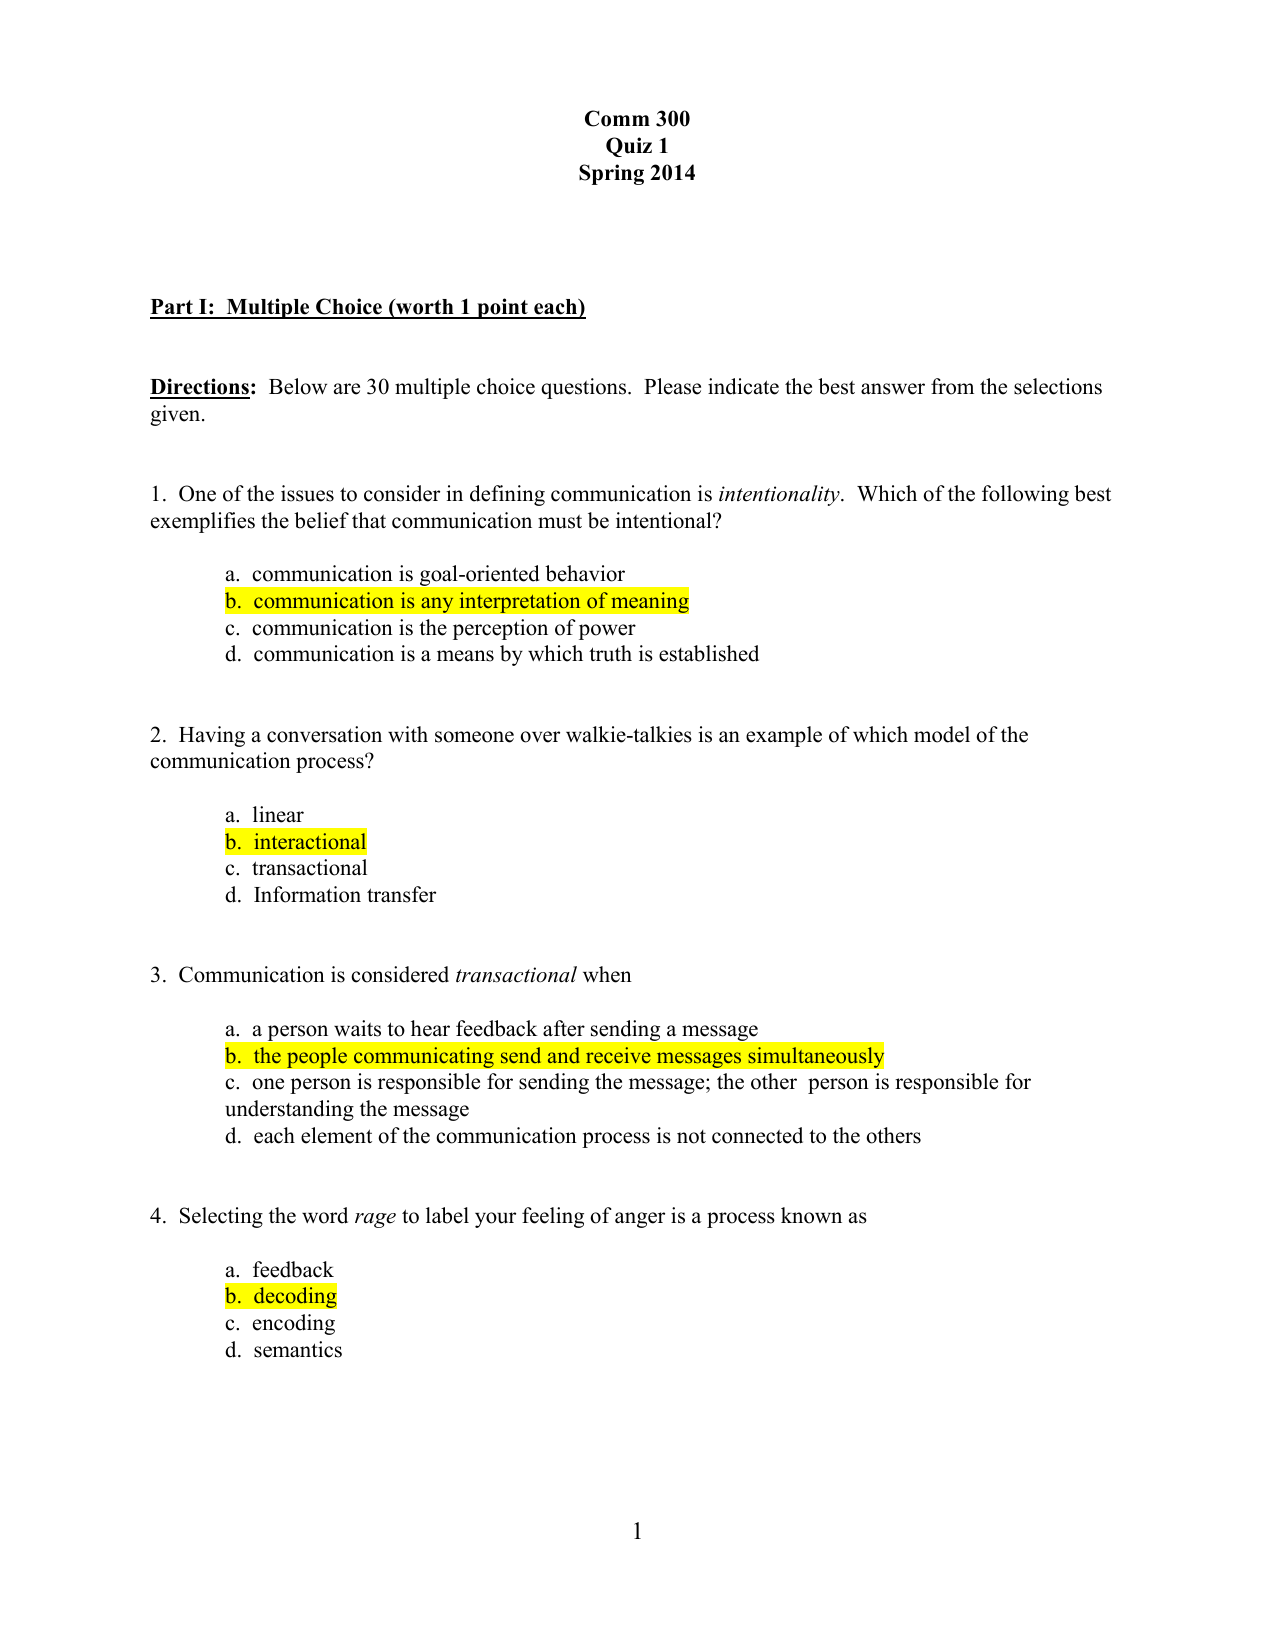 Comm 300 Quiz 1 Spring 2014 Part I: Multiple Choice (worth 1 point